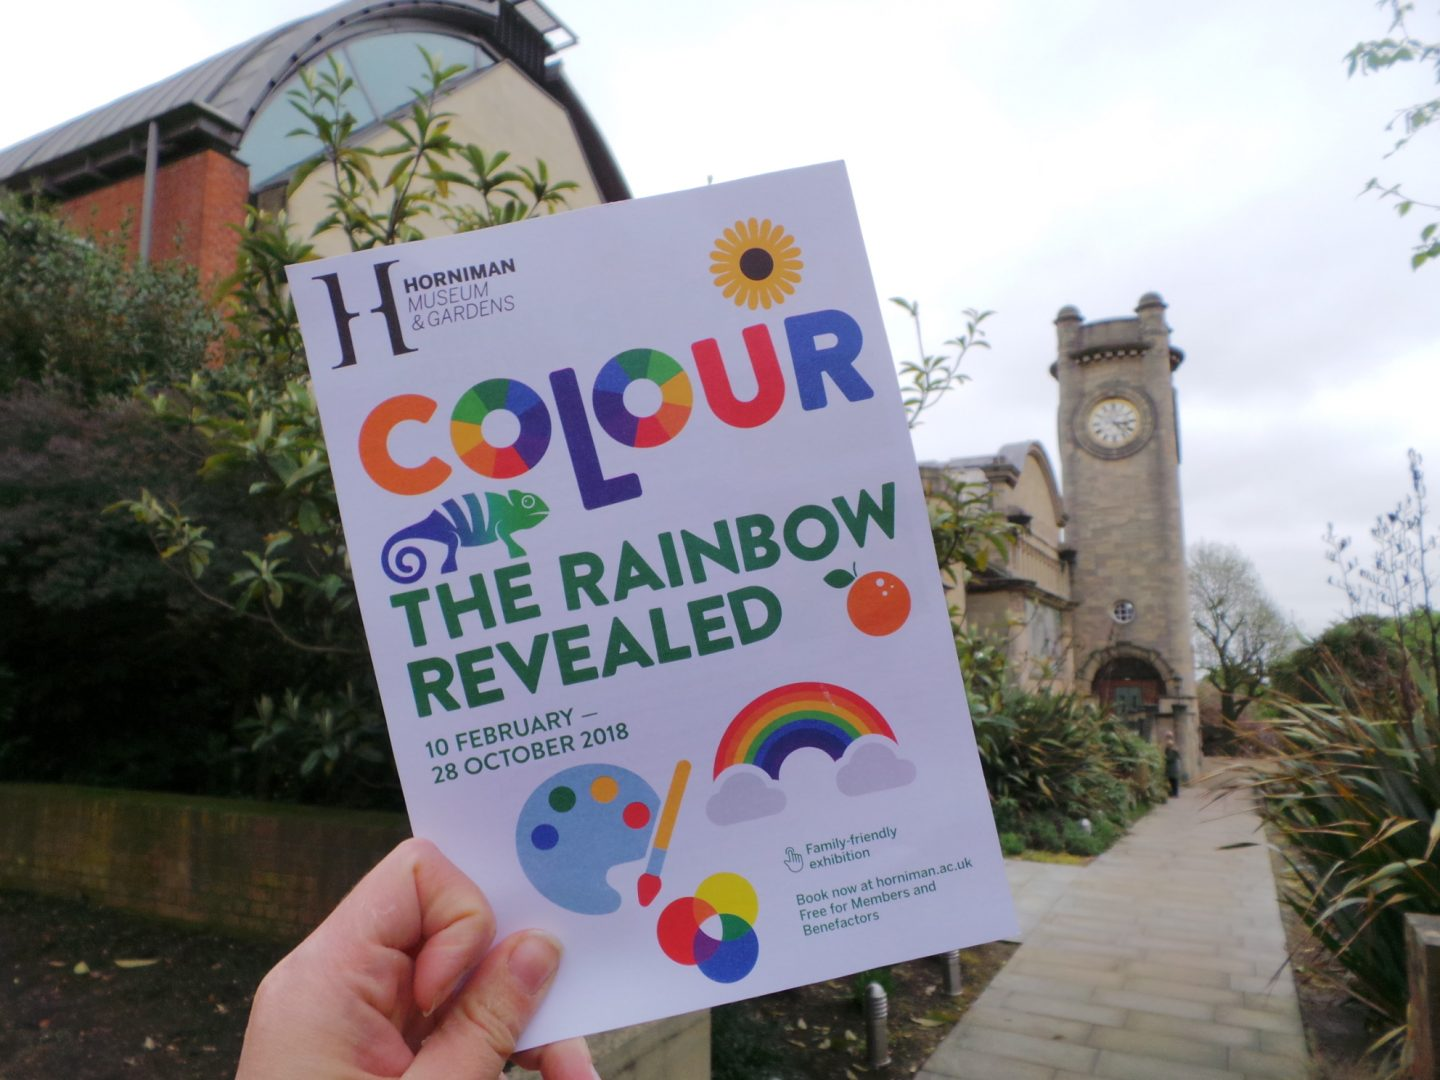 Colour: The Rainbow Revealed at the Horniman Museum